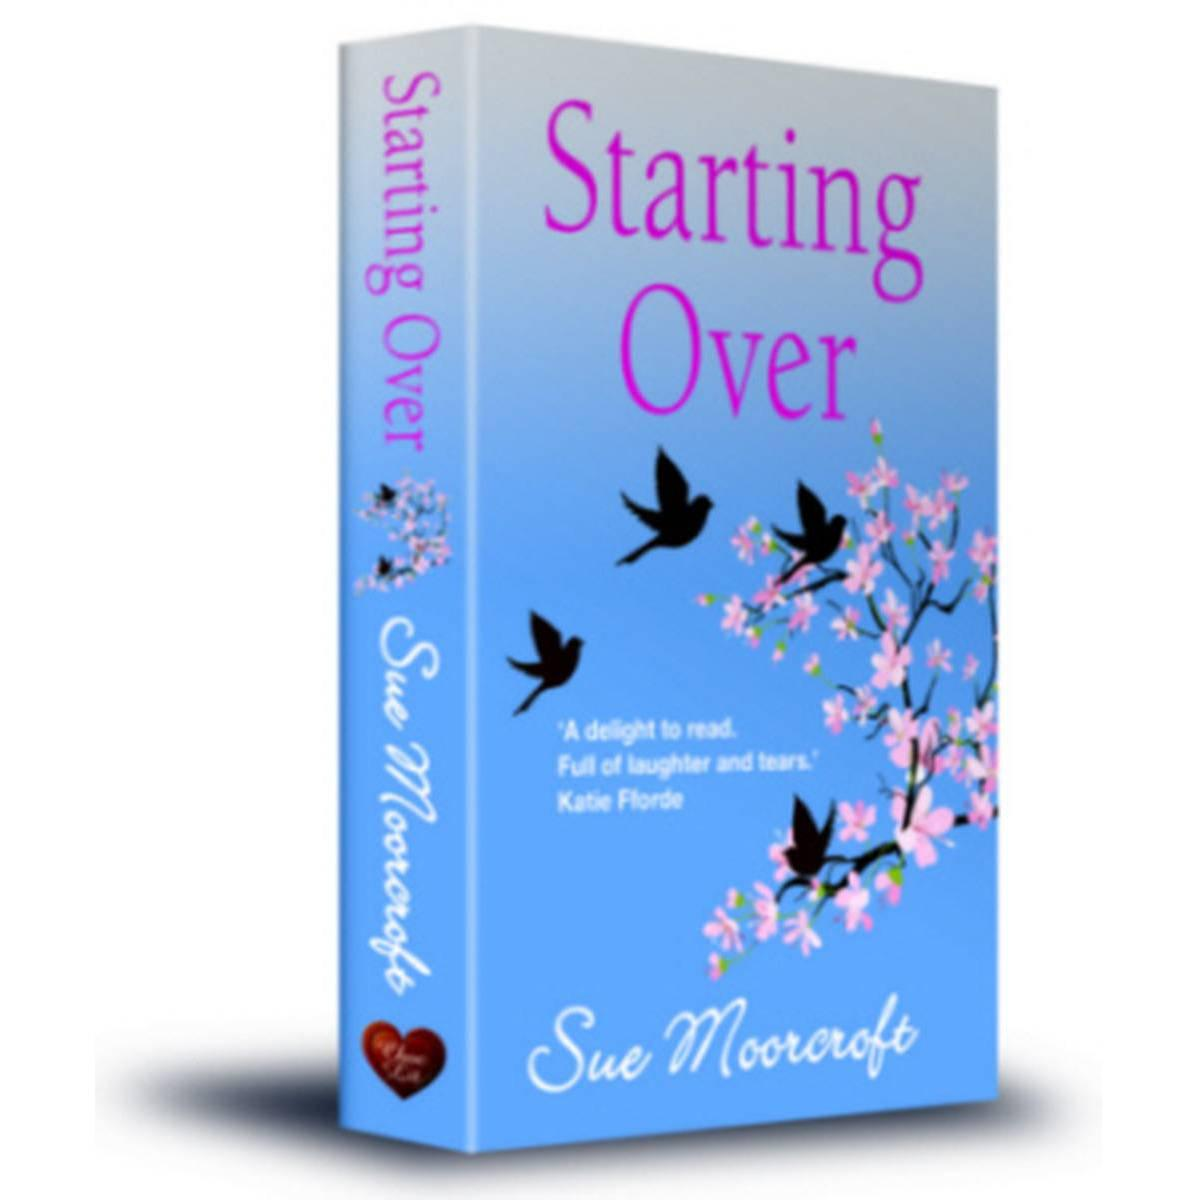 Image of Starting Over